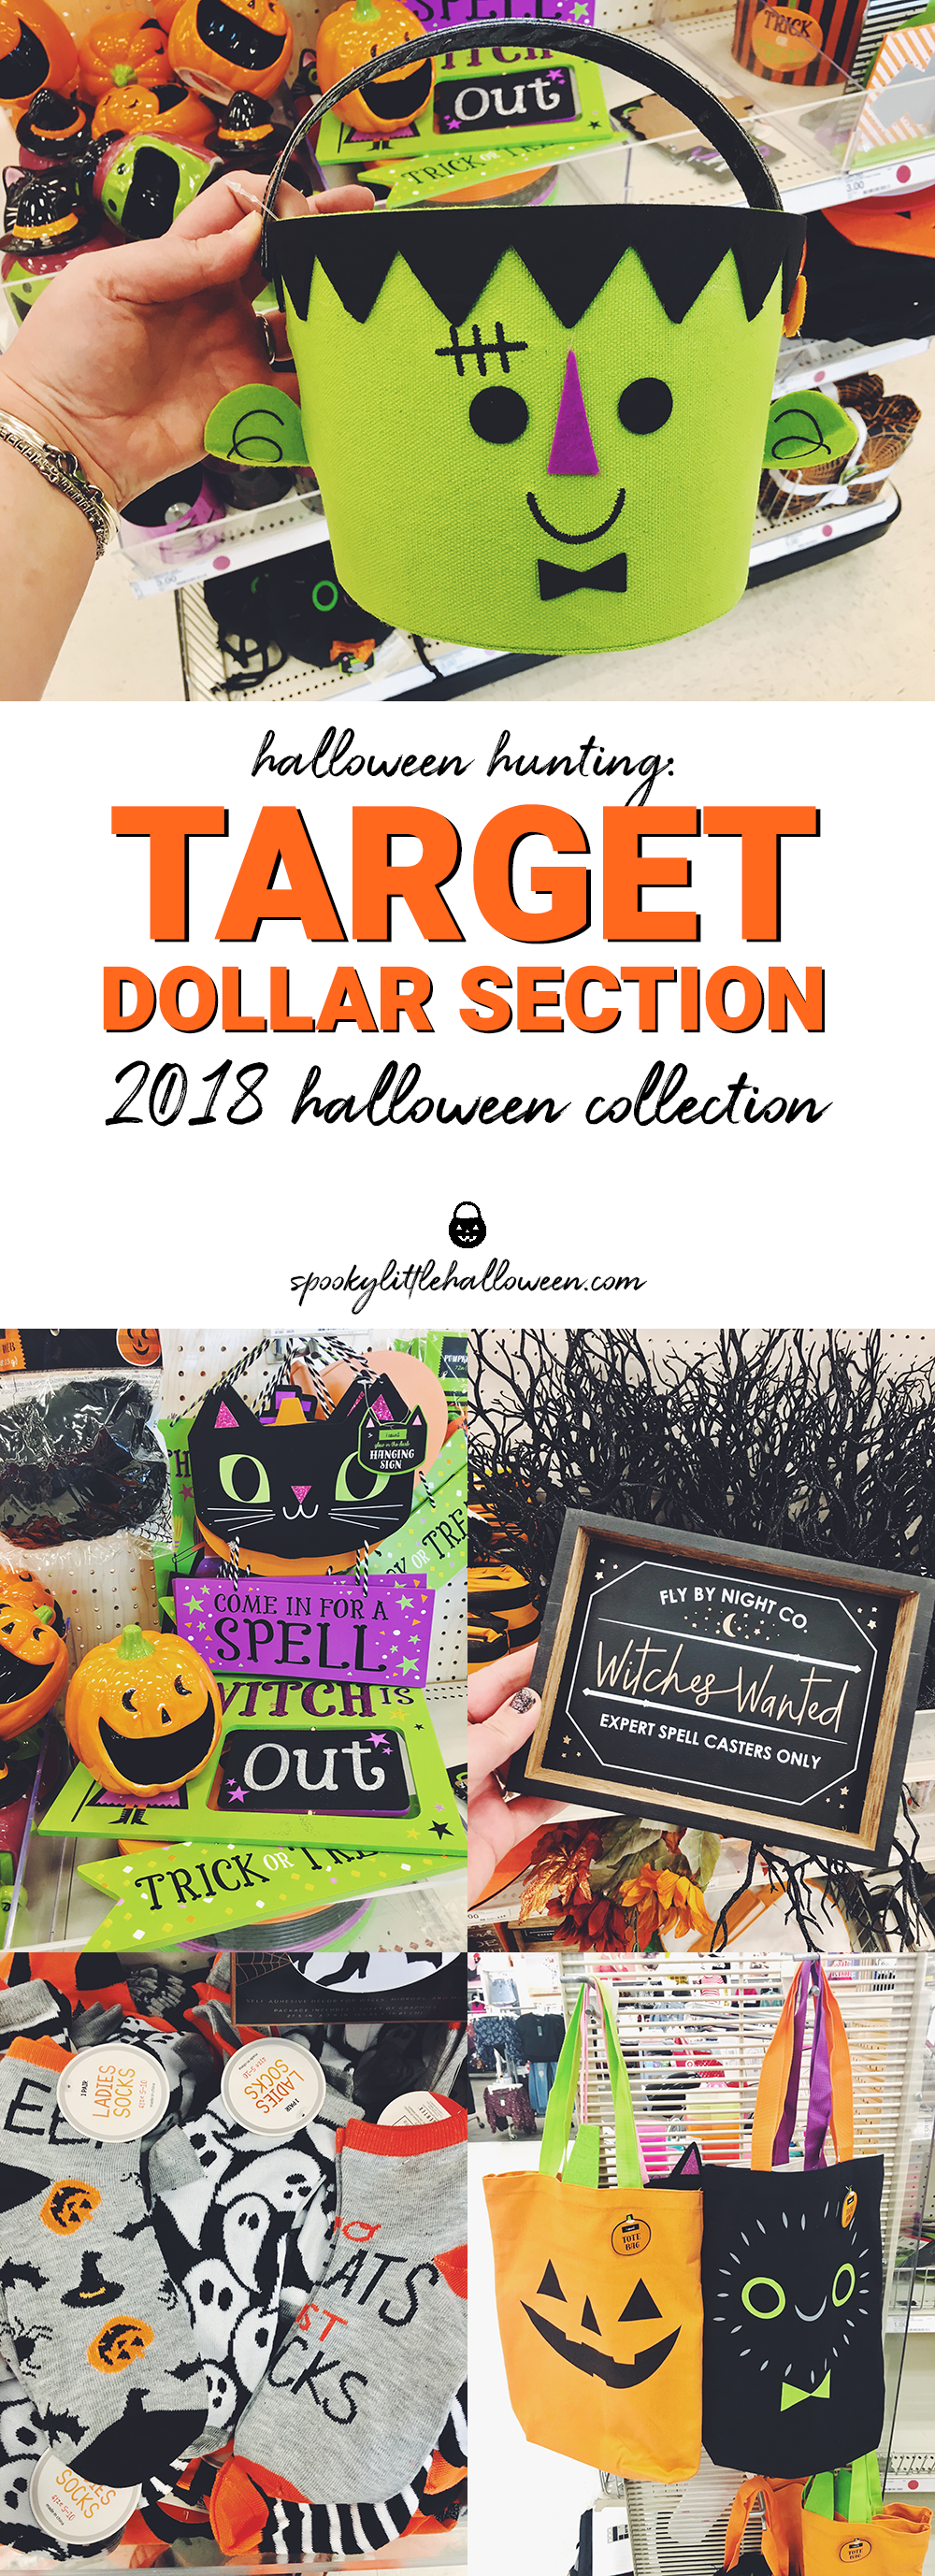 Halloween Hunting Target Dollar Section 2018 Halloween Collection Spooky Little Halloween